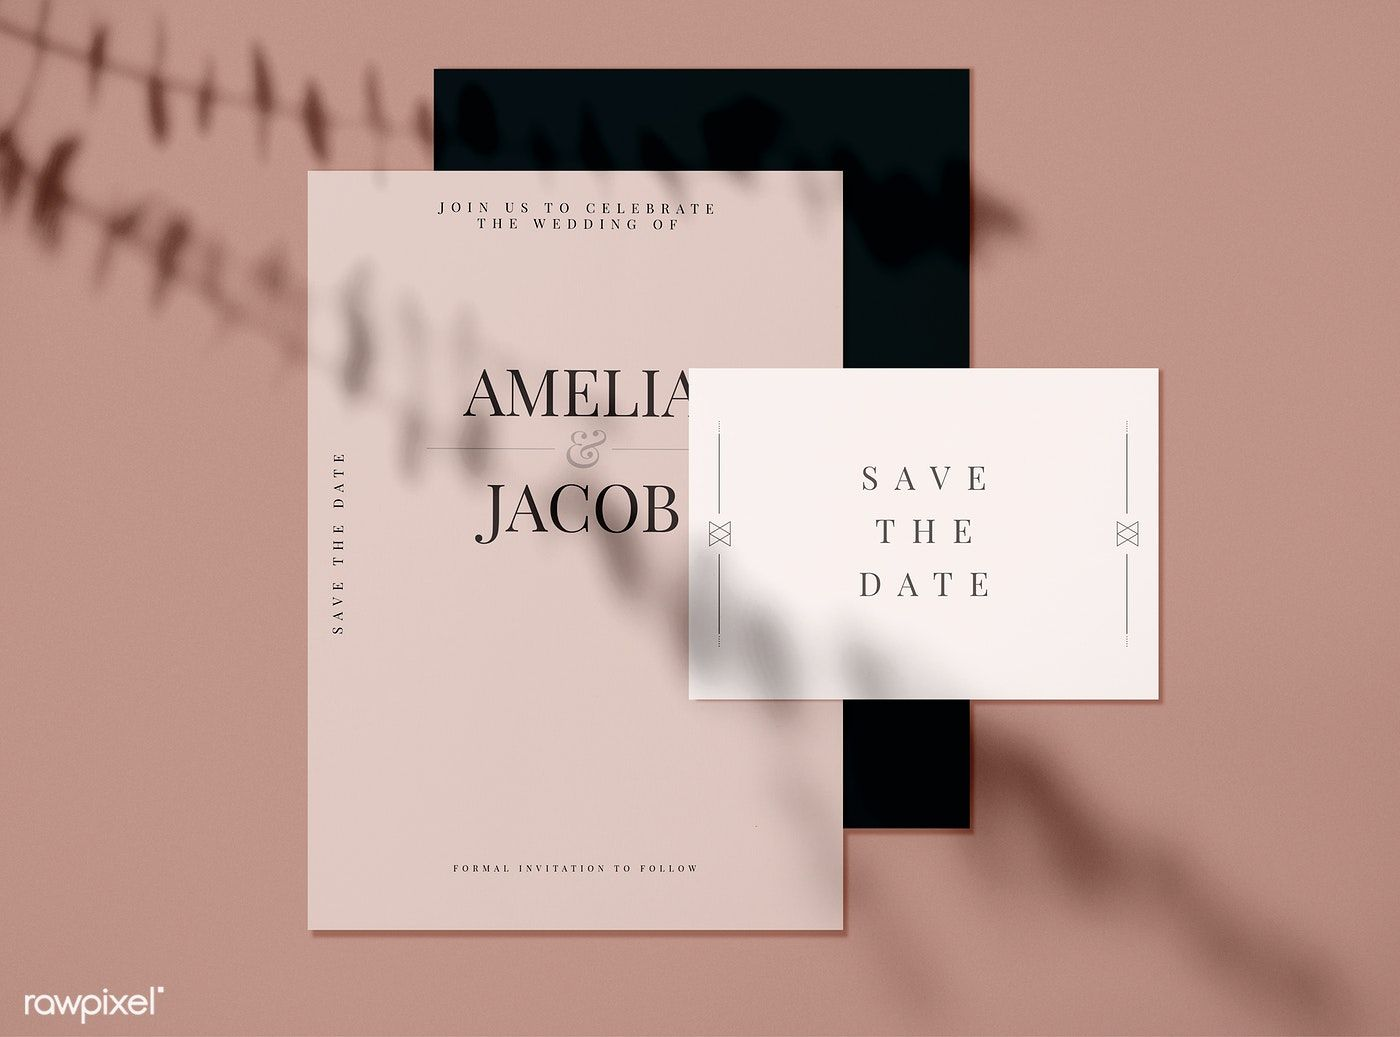 Save The Date Wedding Invitation Card Mockups Free Image By